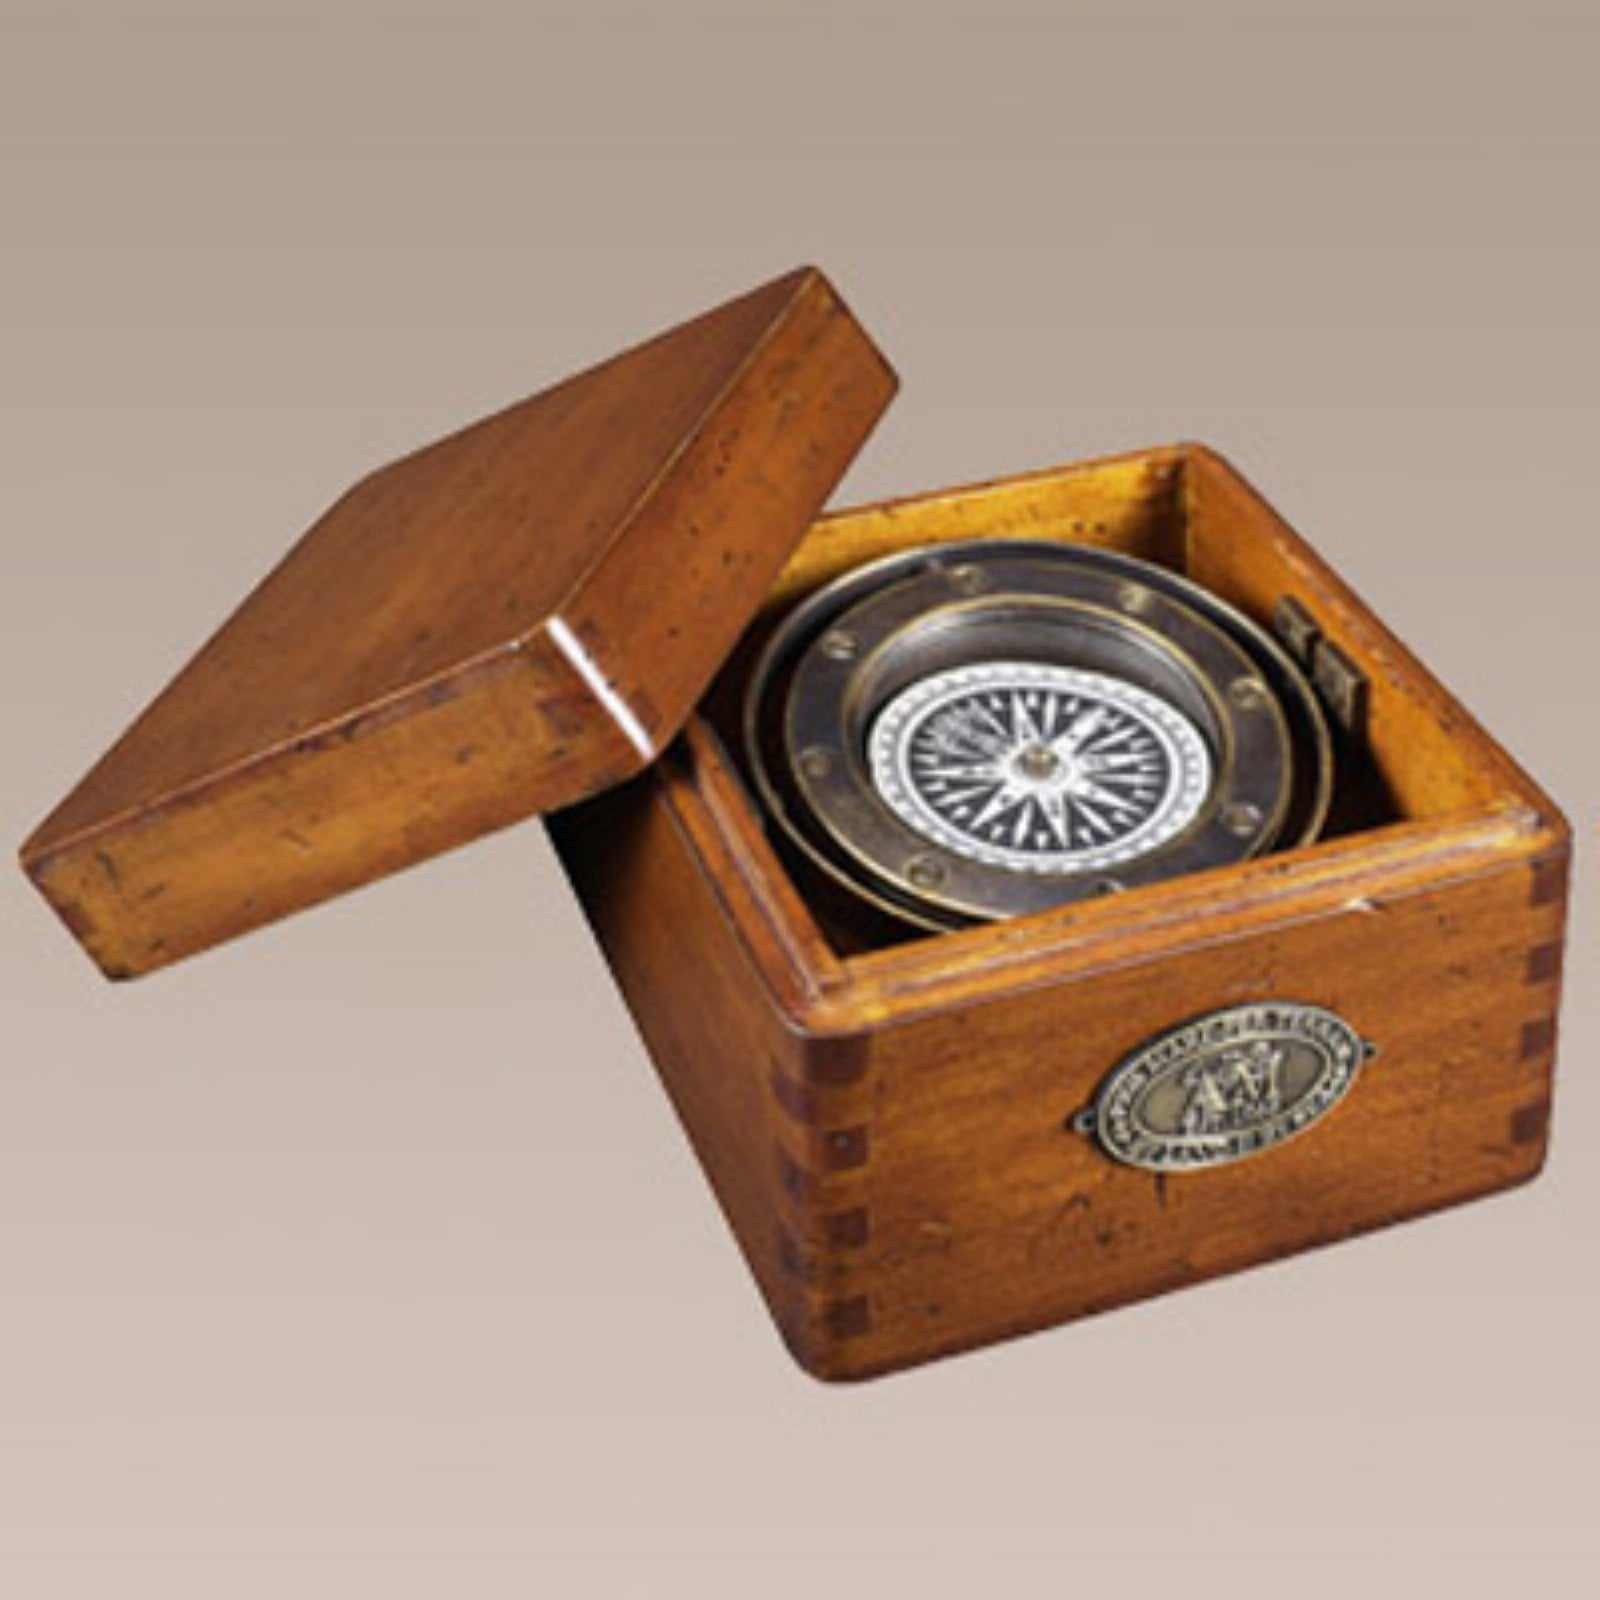 Authentic Models Lifeboat Compass by Authentic Models